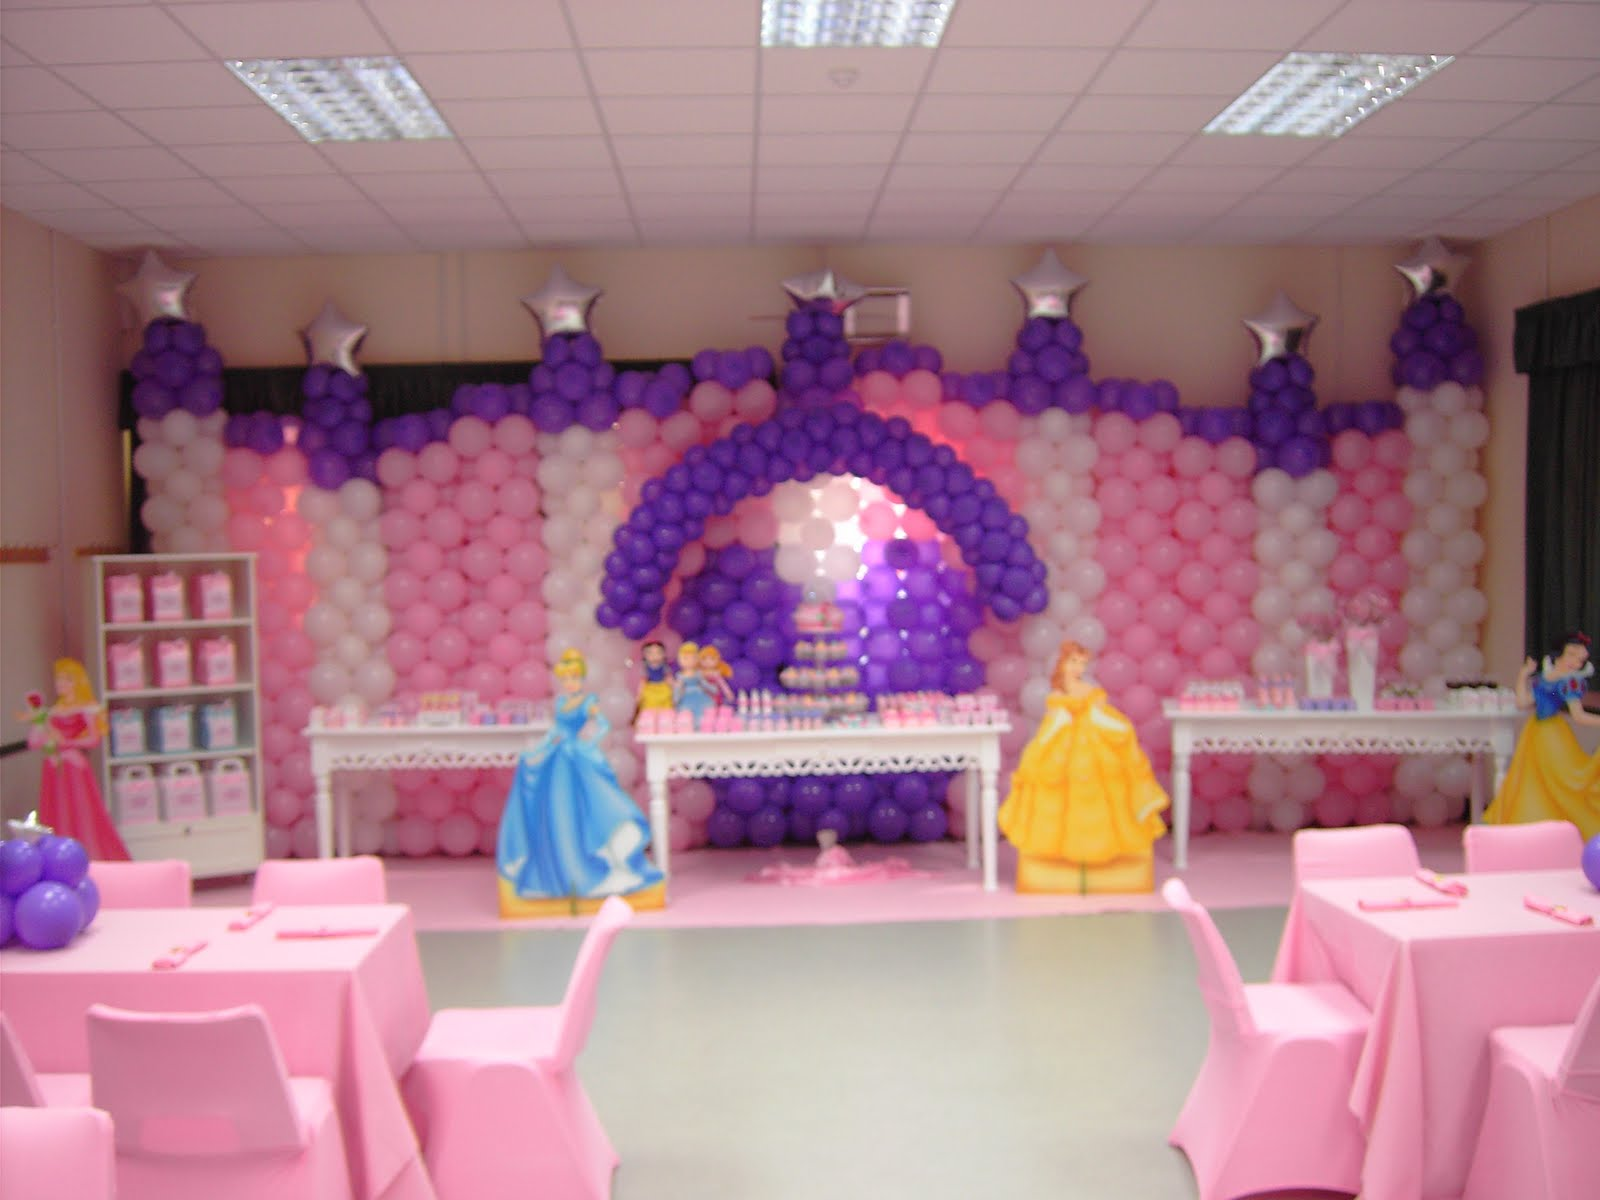 Birthday party decorations in hall image inspiration of for Baby shower party hall decoration ideas